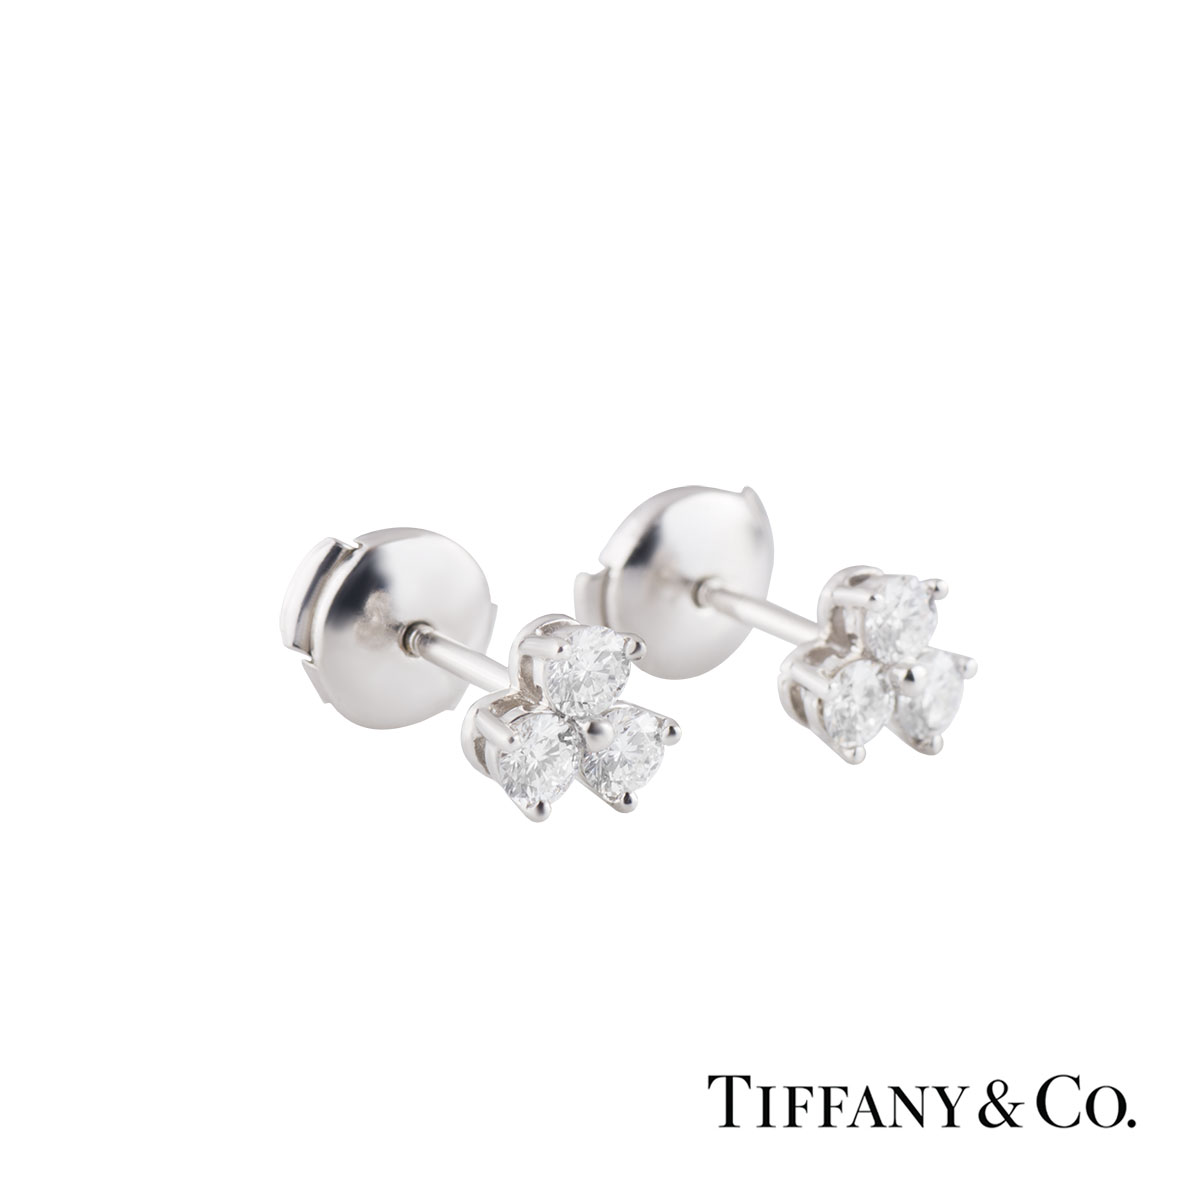 4c456f61638 Tiffany   Co. Platinum Diamond Aria Earrings 0.60ct G VS ...